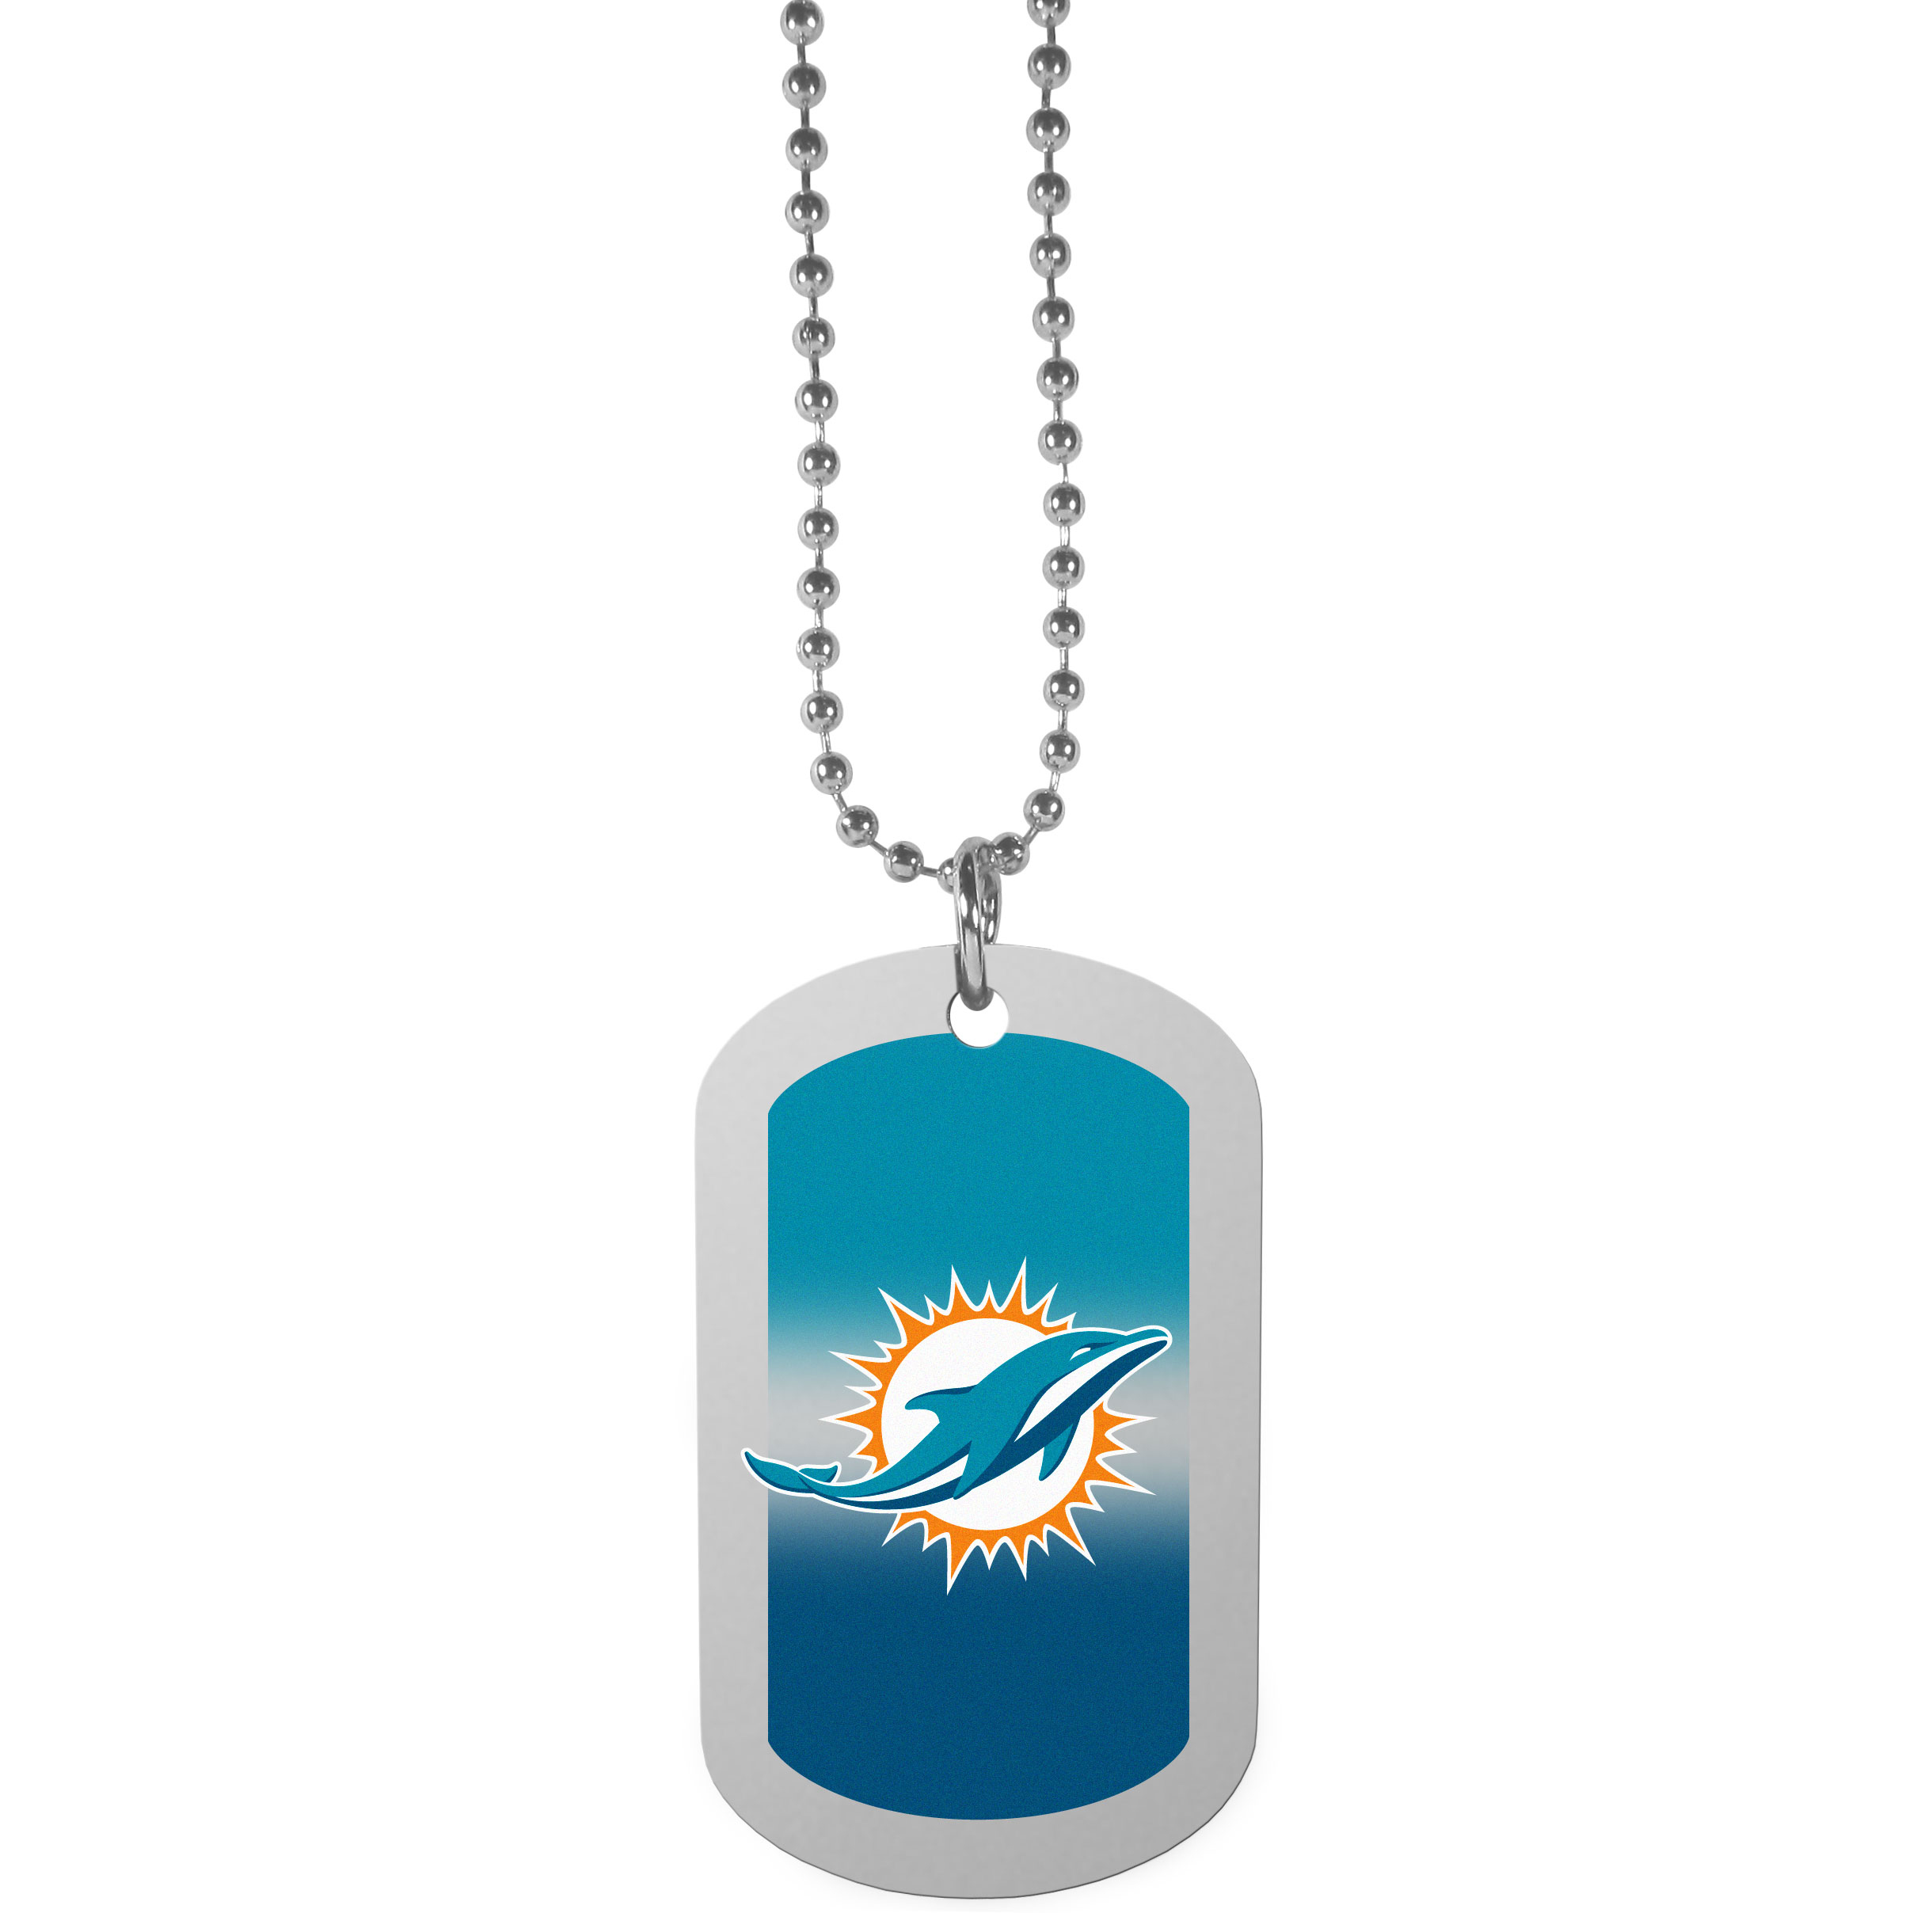 Miami Dolphins Team Tag Necklace - Dog tag necklaces are a fashion statement that is here to stay. The sporty version of the classic tag features a gradient print in team colors featuring a full color team logo over a high polish tag to create a bold and sporty look. The tag comes on a 26 inch ball chain with a ball and joint clasp. Any Miami Dolphins would be proud to wear this attractive fashion accessory.